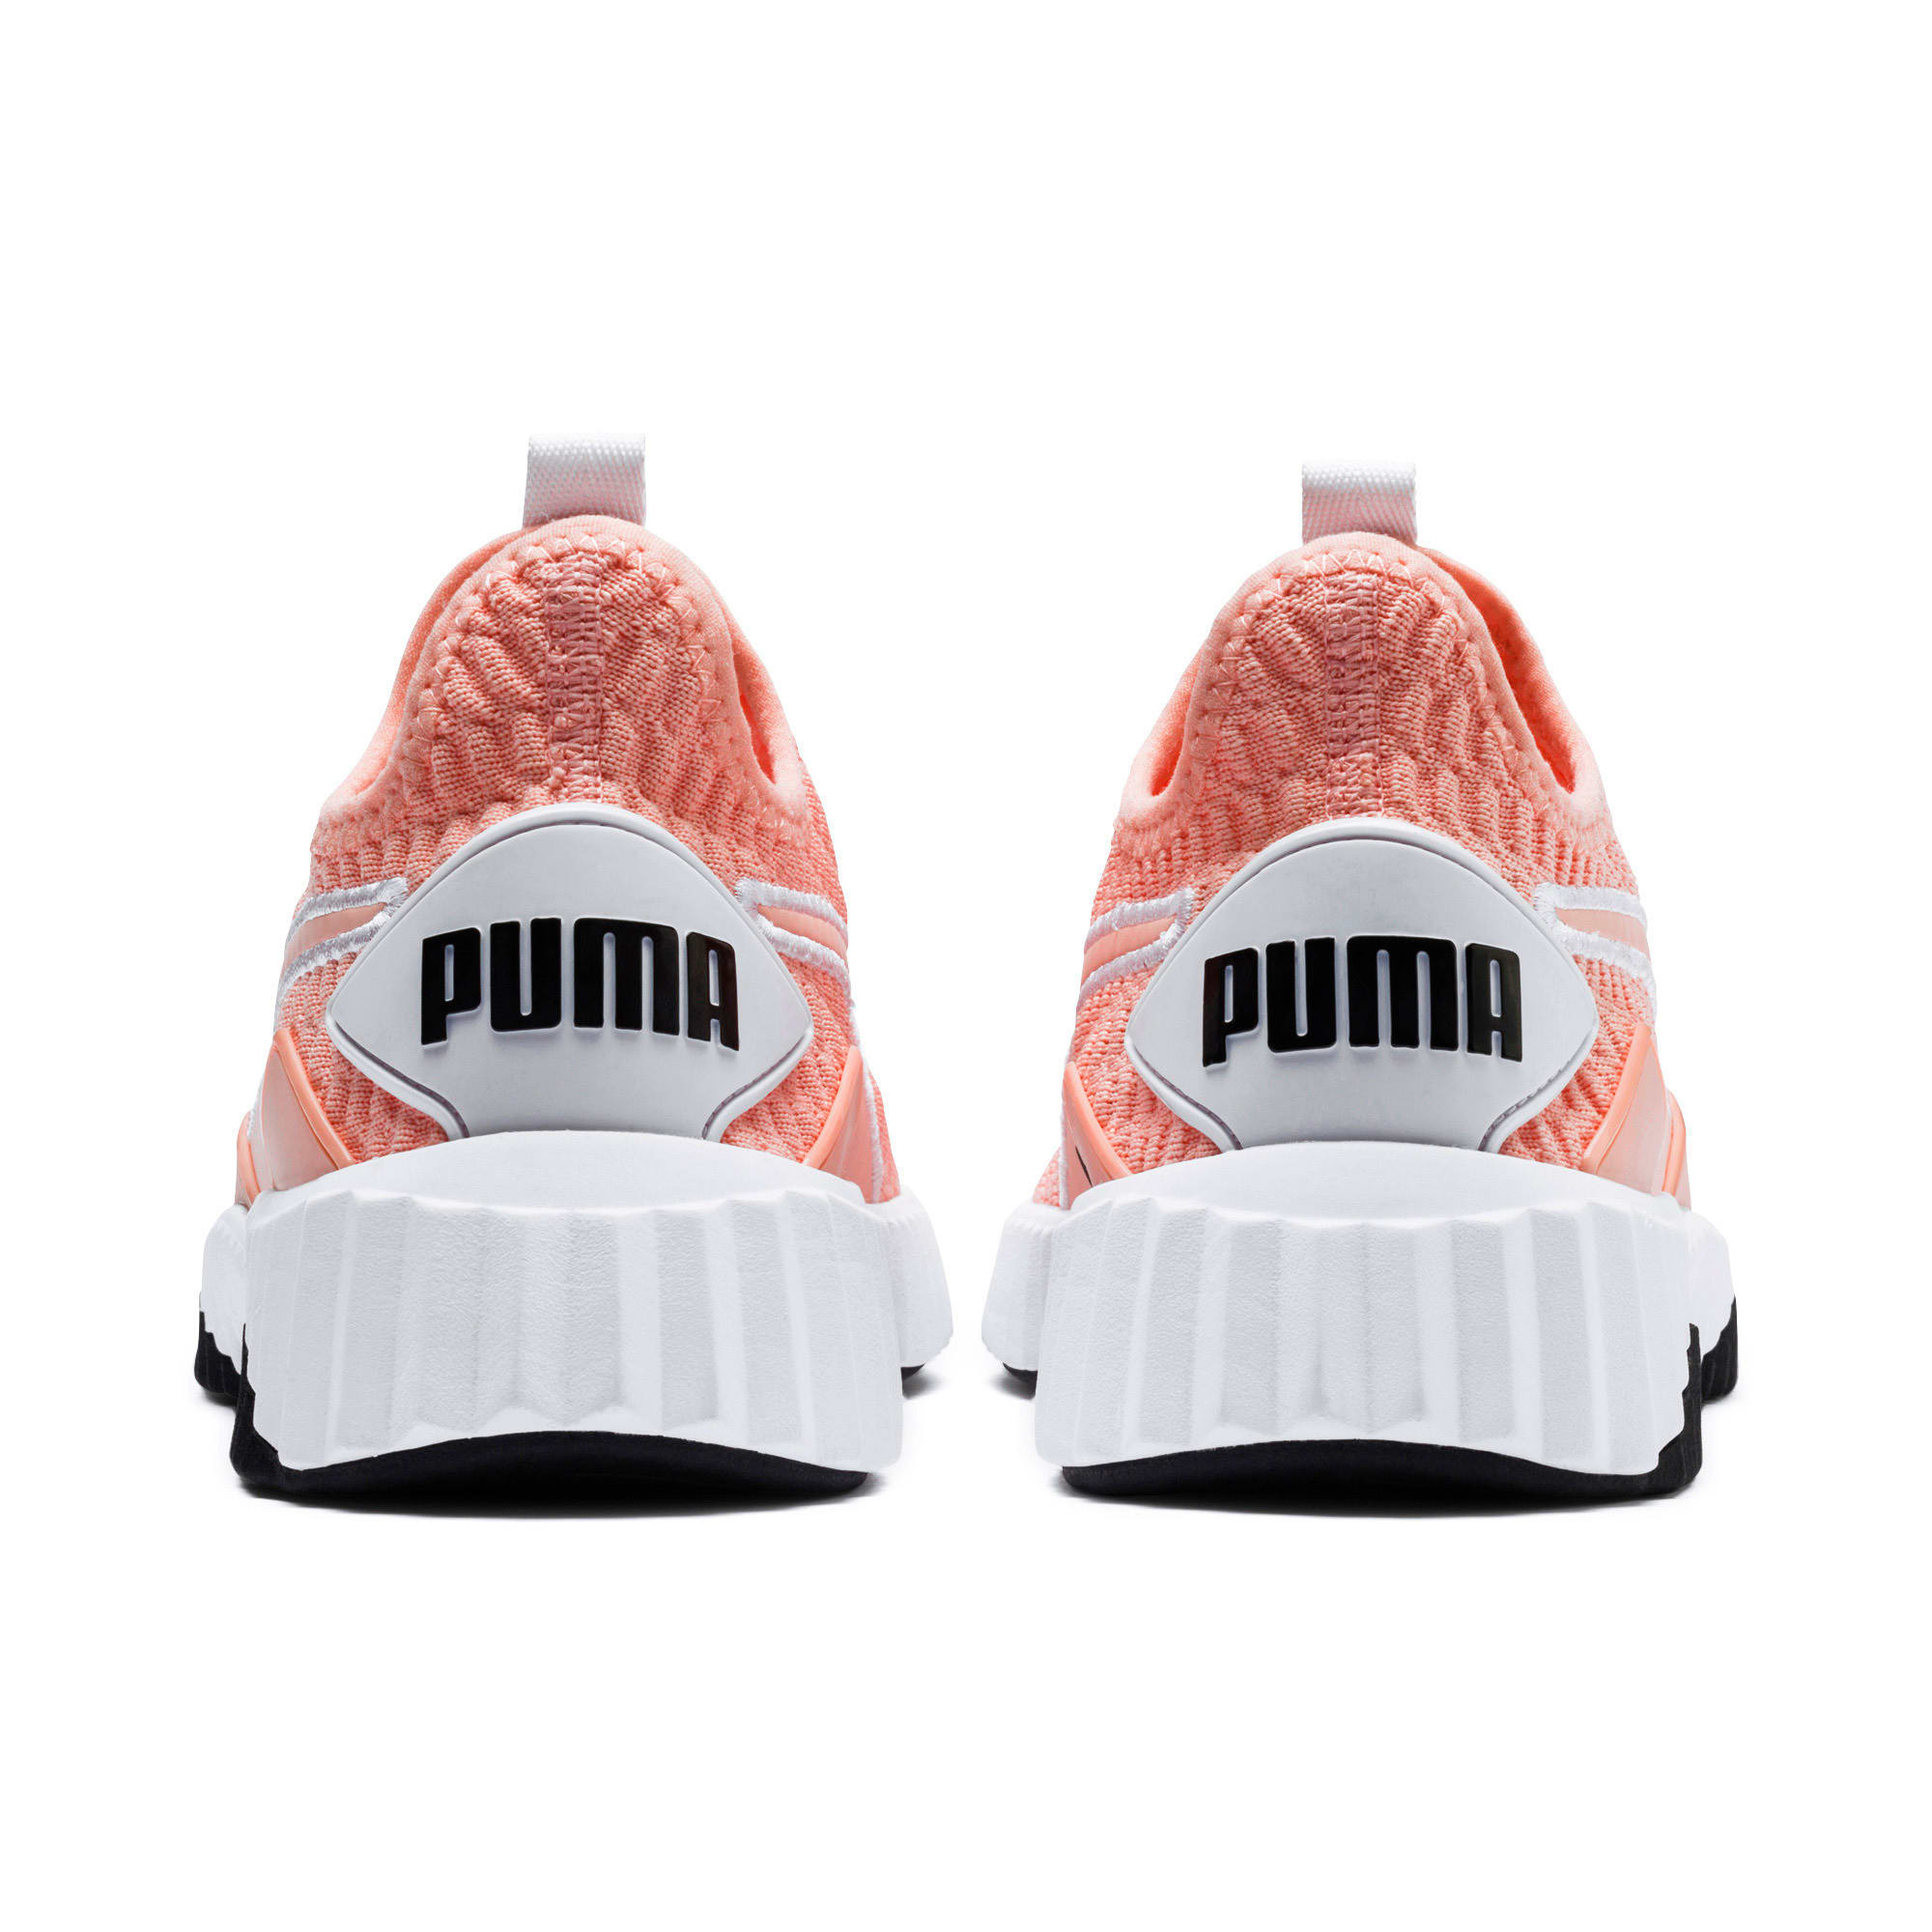 Thumbnail 4 of Defy Women's Training Shoes, Peach Bud-Puma White, medium